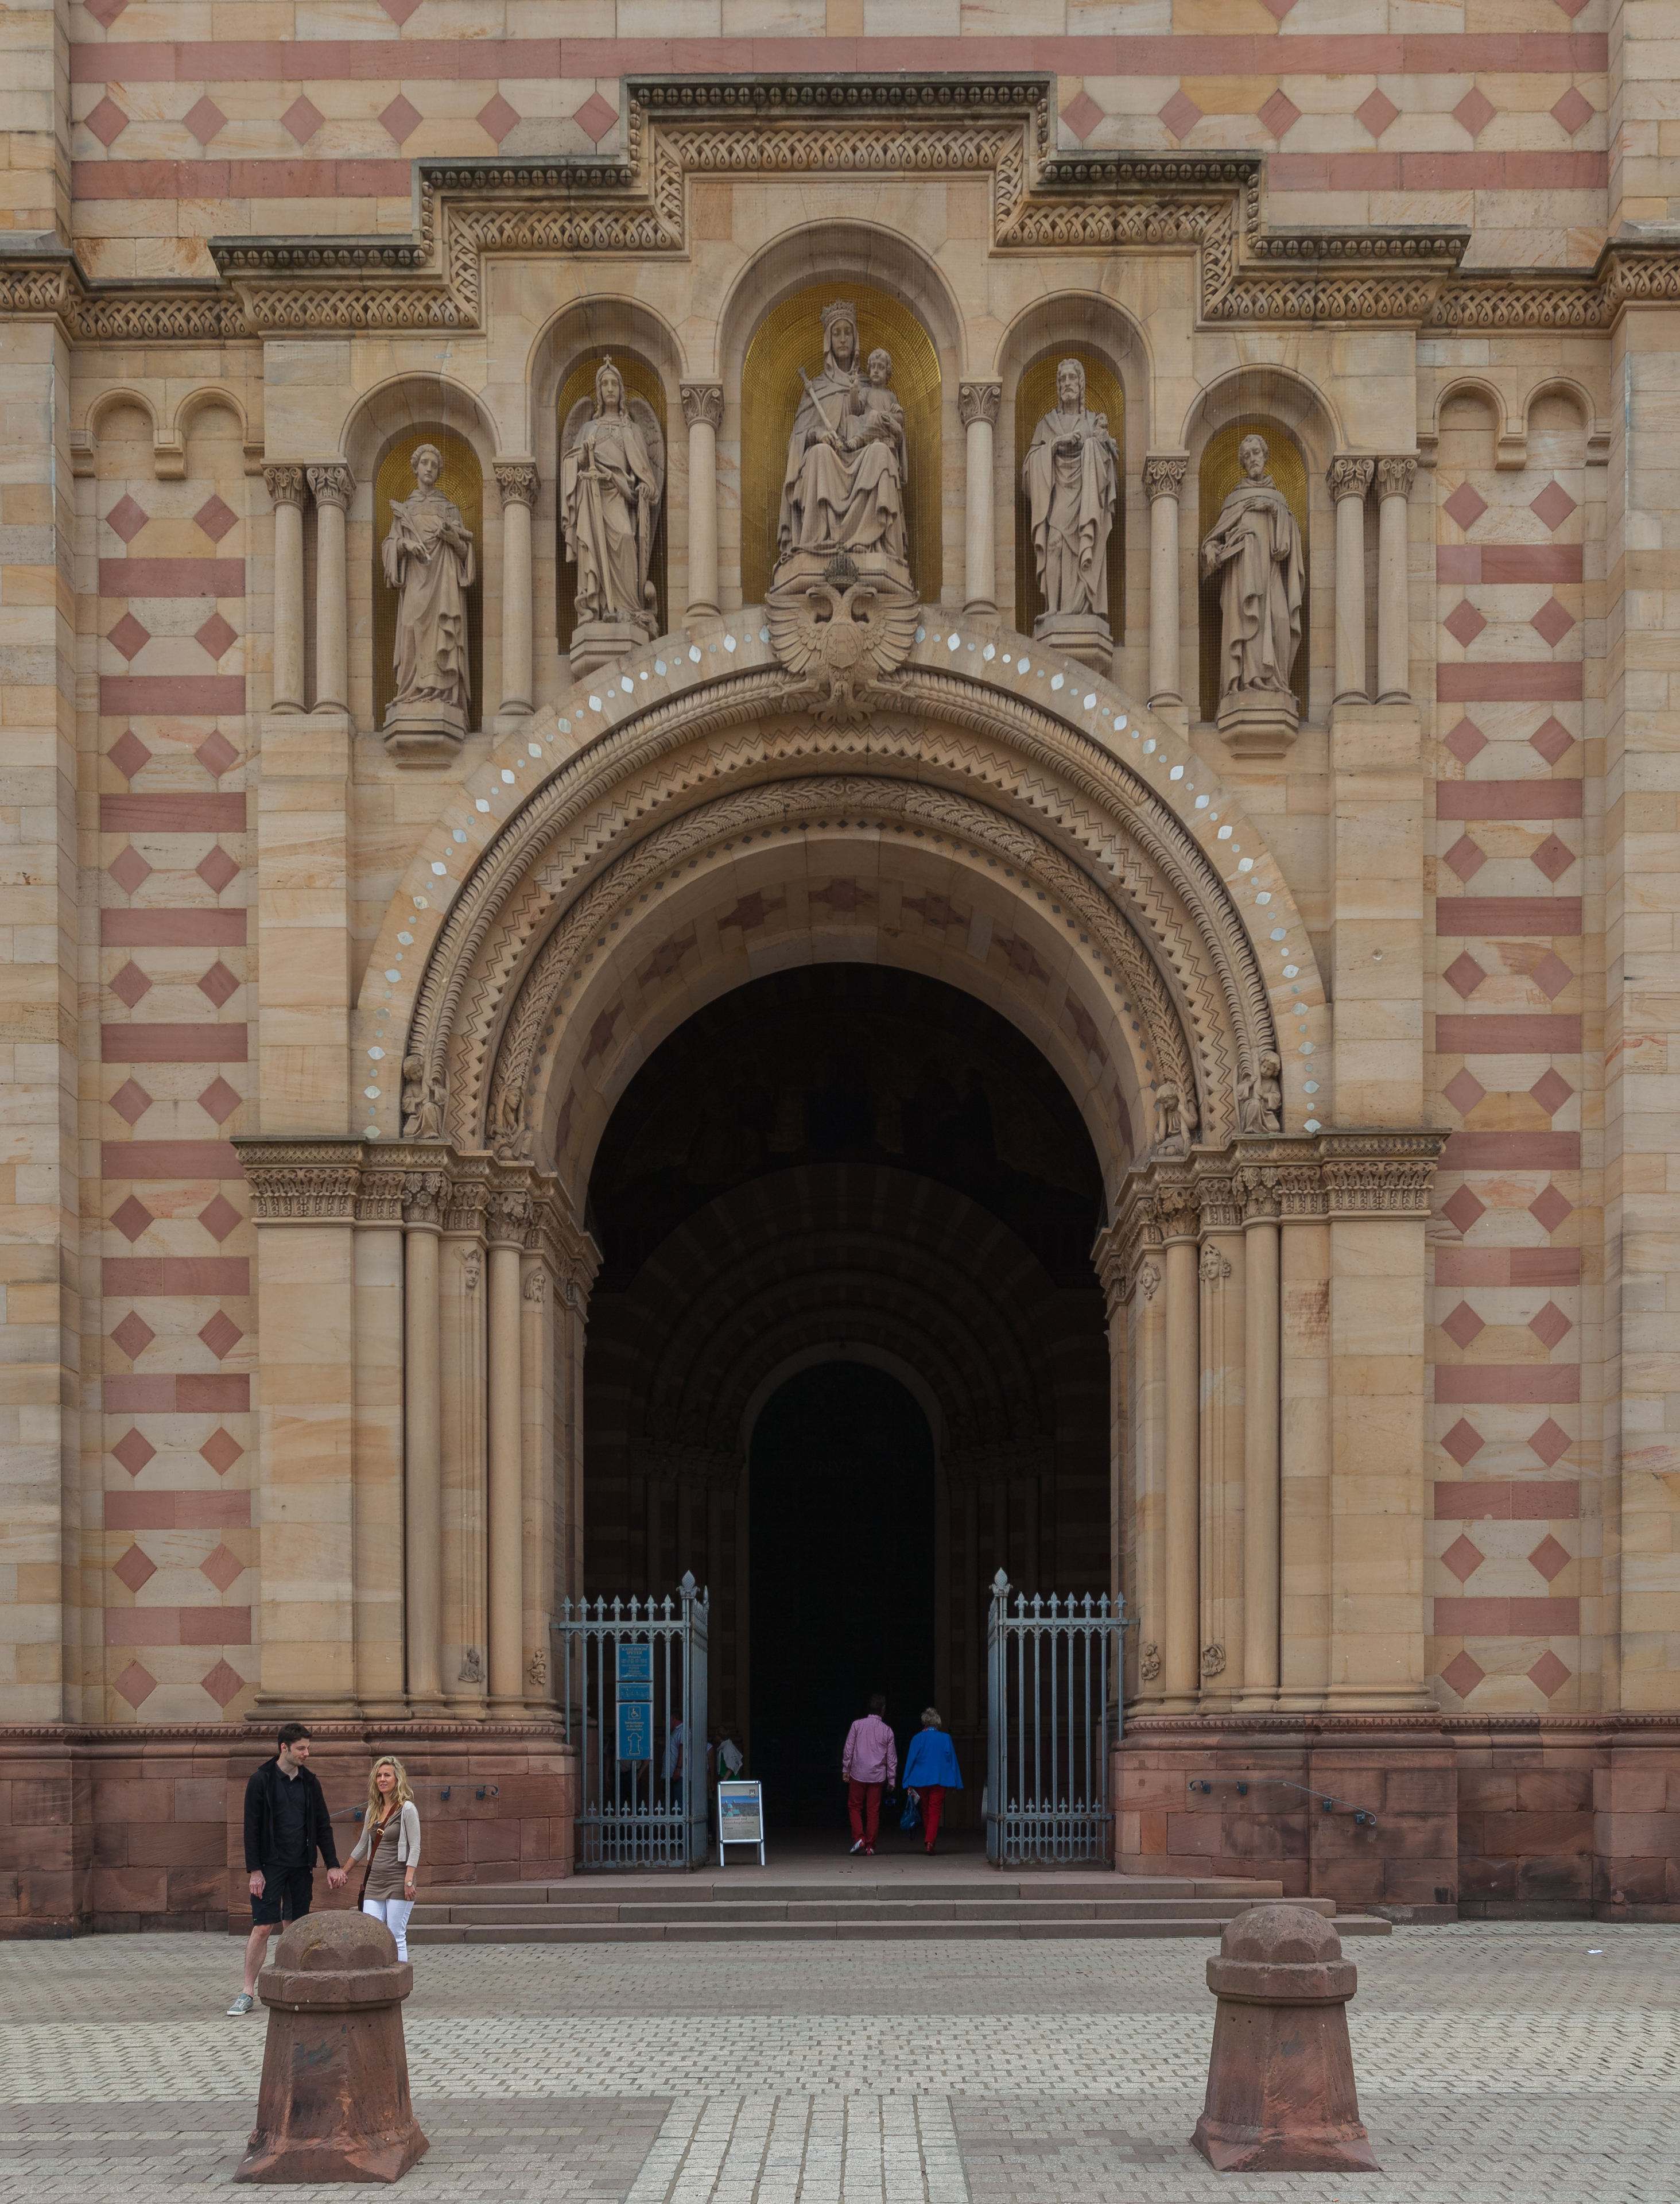 Catedral de Speyer, Alemania, 2014-06-01, DD 05